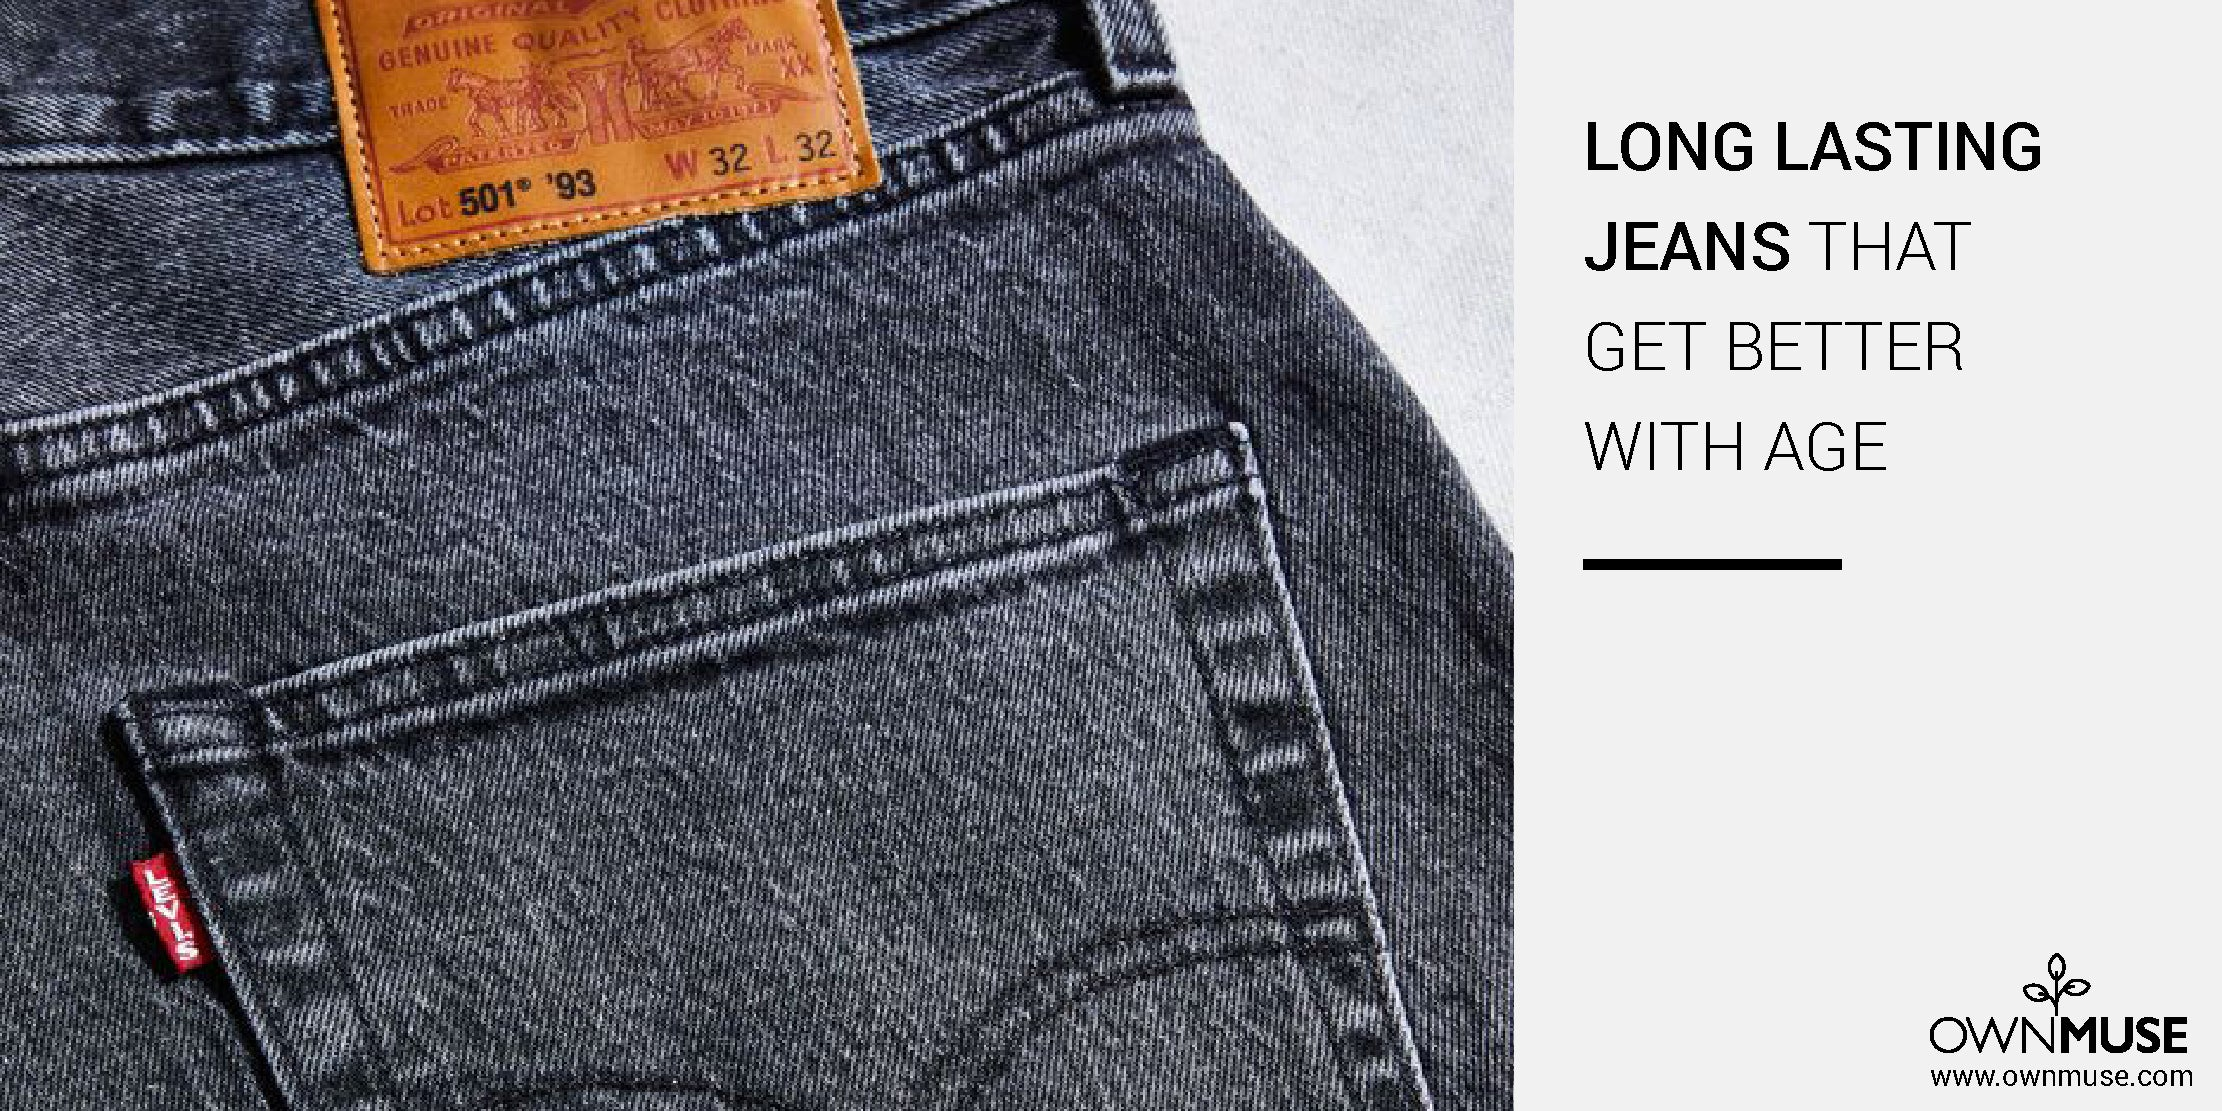 levis-sustainable-ethical-jeans-made-to-last-ownmuse